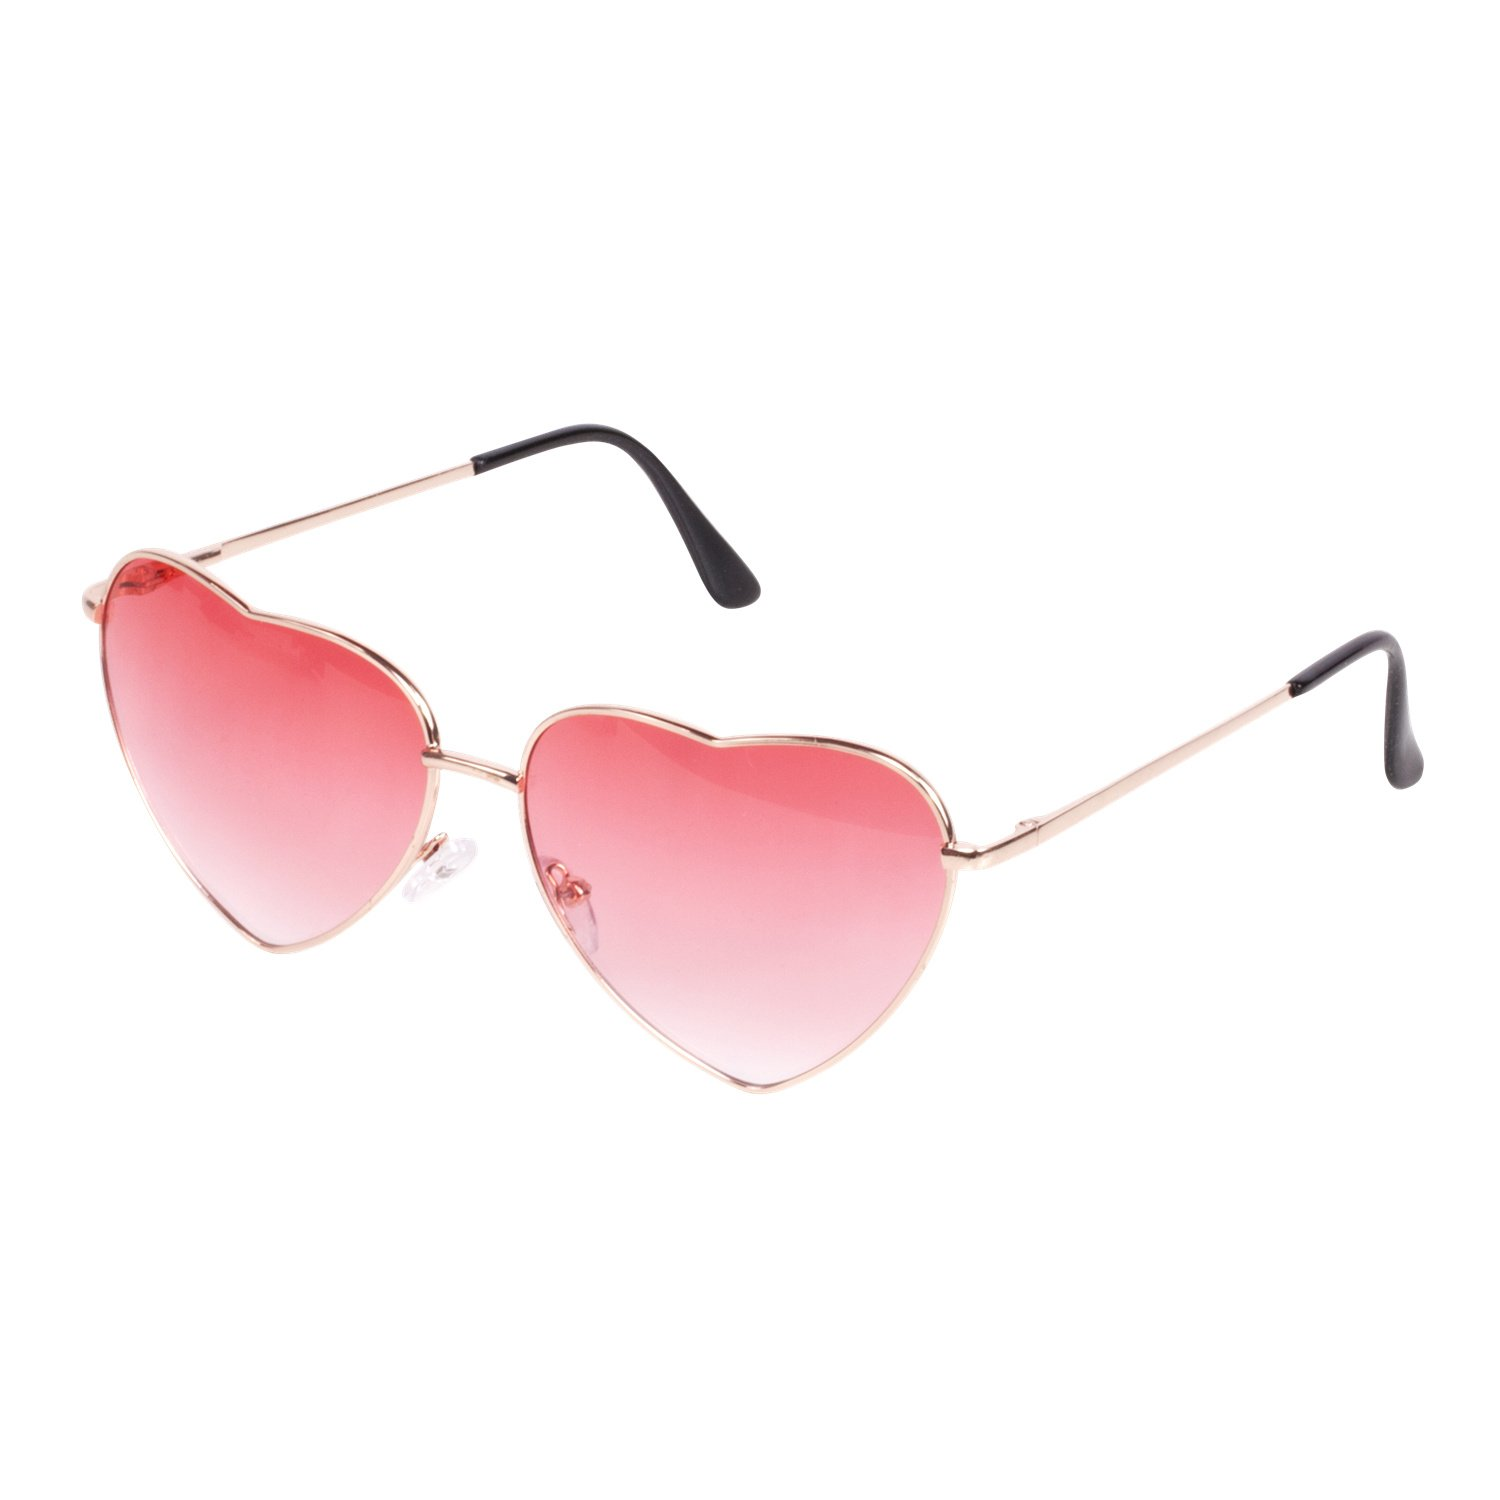 86d5881714 Get Quotations · CENWOCON Heart Shape Sunglasses Beach Vacation Sunglasses  Gold Frame